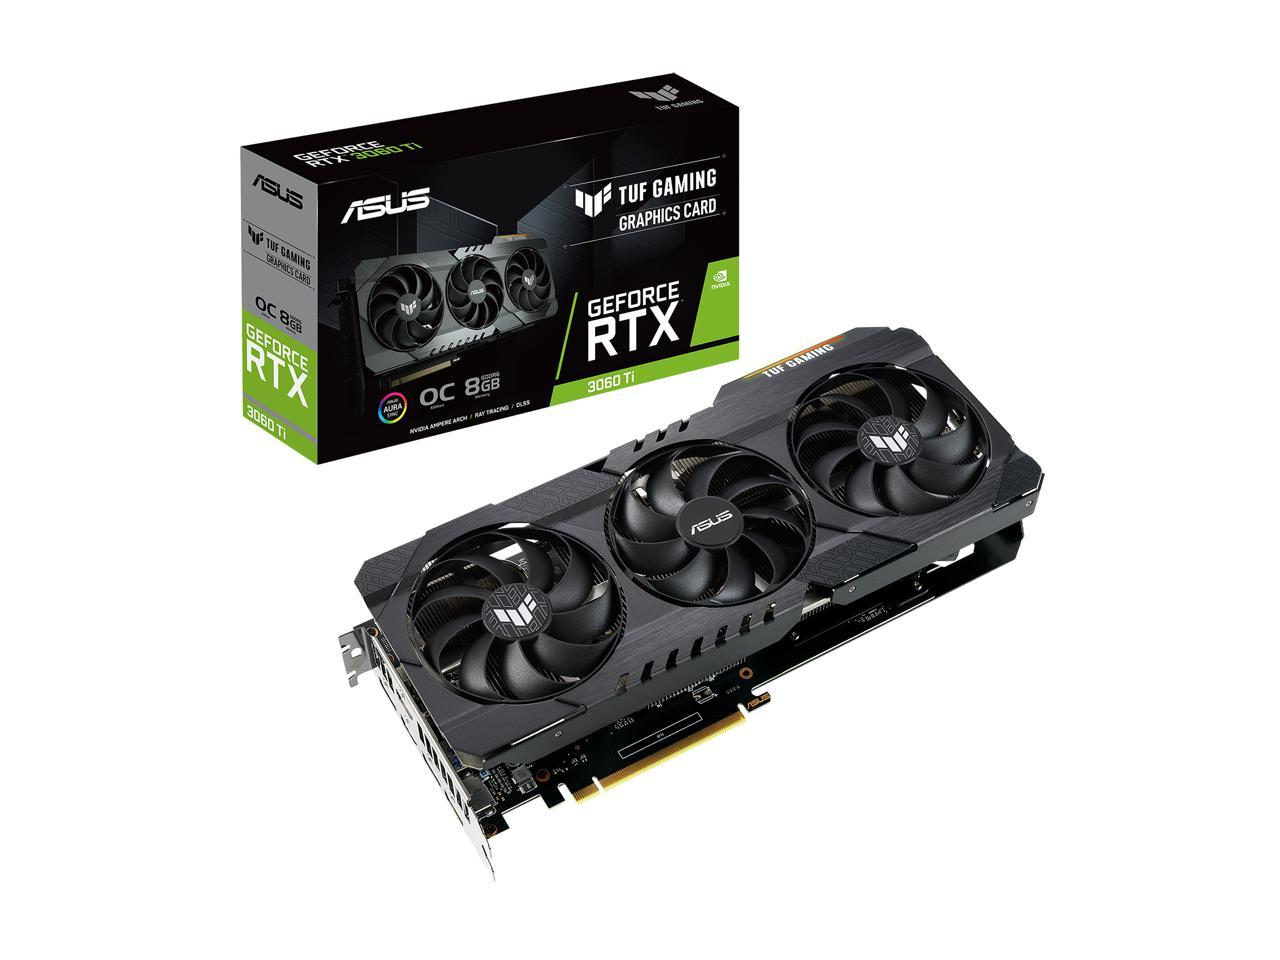 ASUS Geforce RTX 3060 TUF TI 8GB GAMING Video Graphics Card BACKORDER